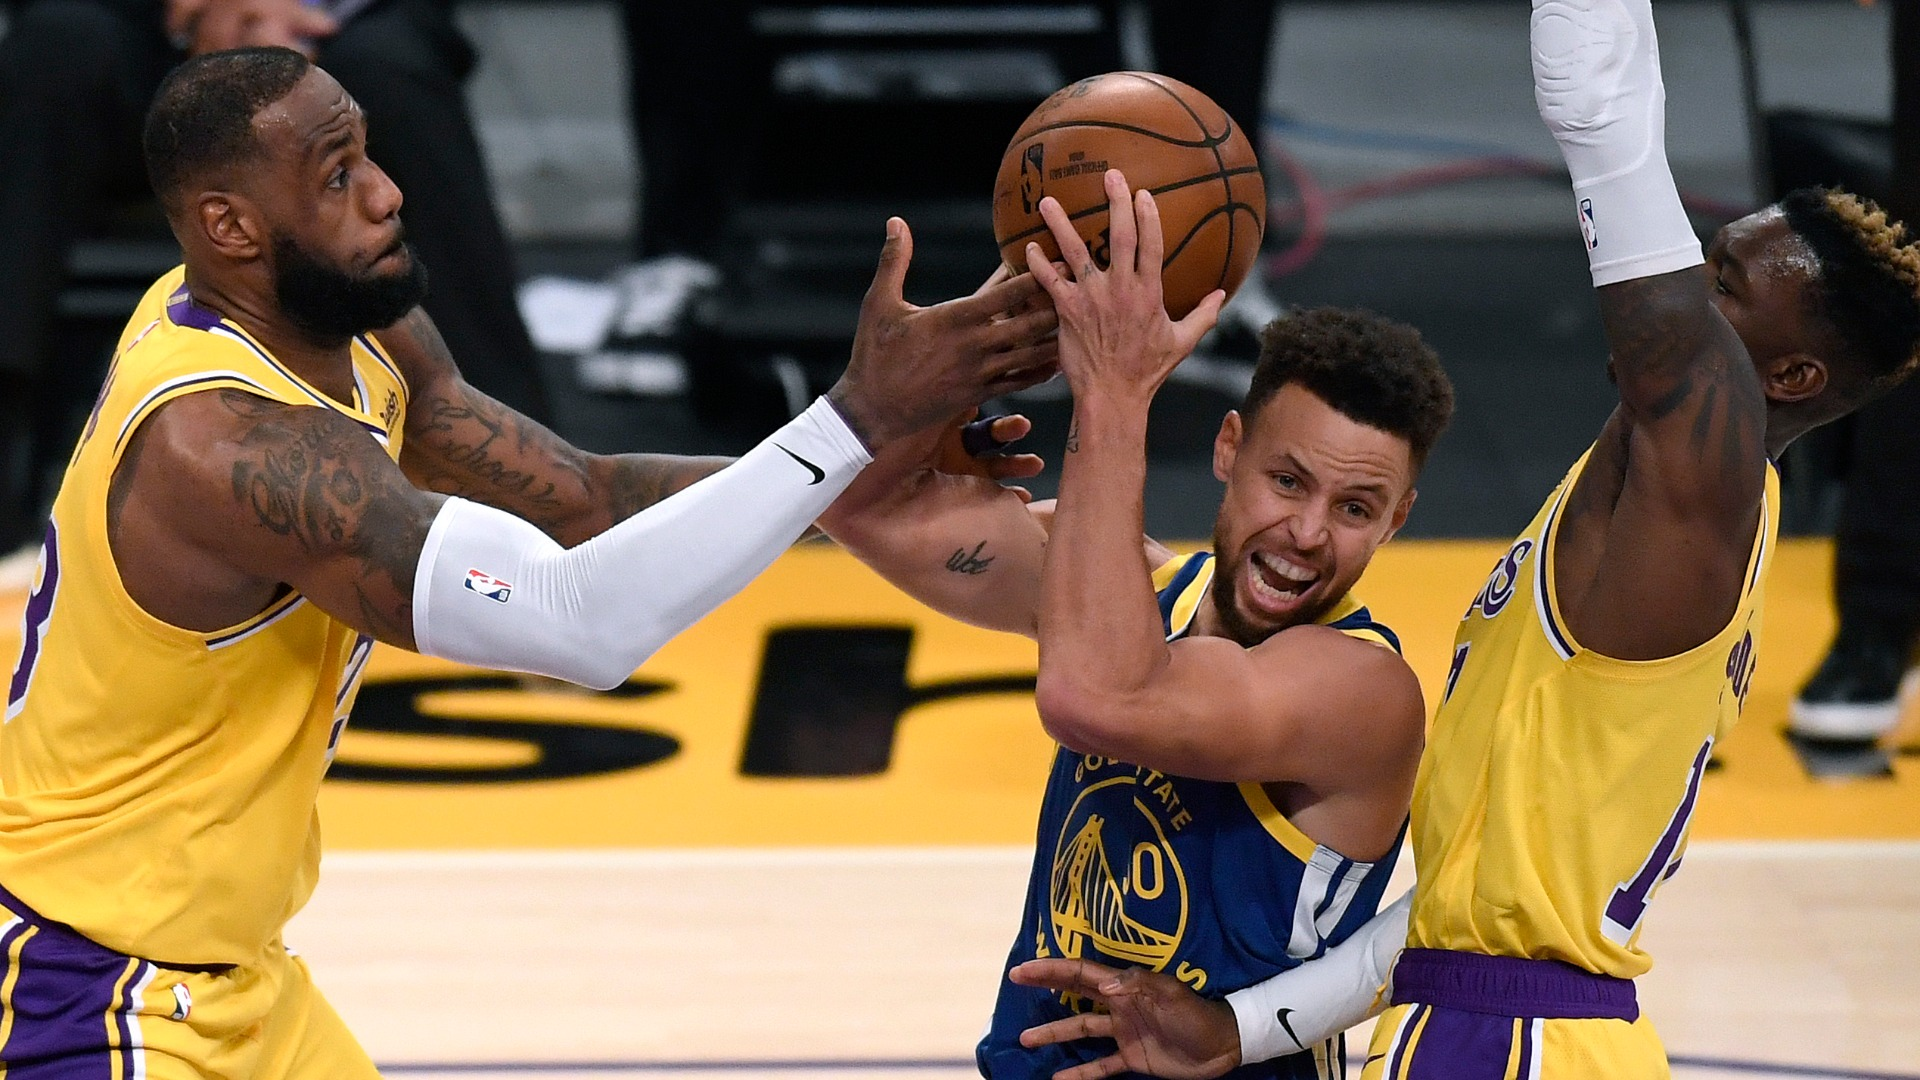 The Golden State Warriors have momentum as they look to beat LeBron James' Los Angeles Lakers for the second time this season.